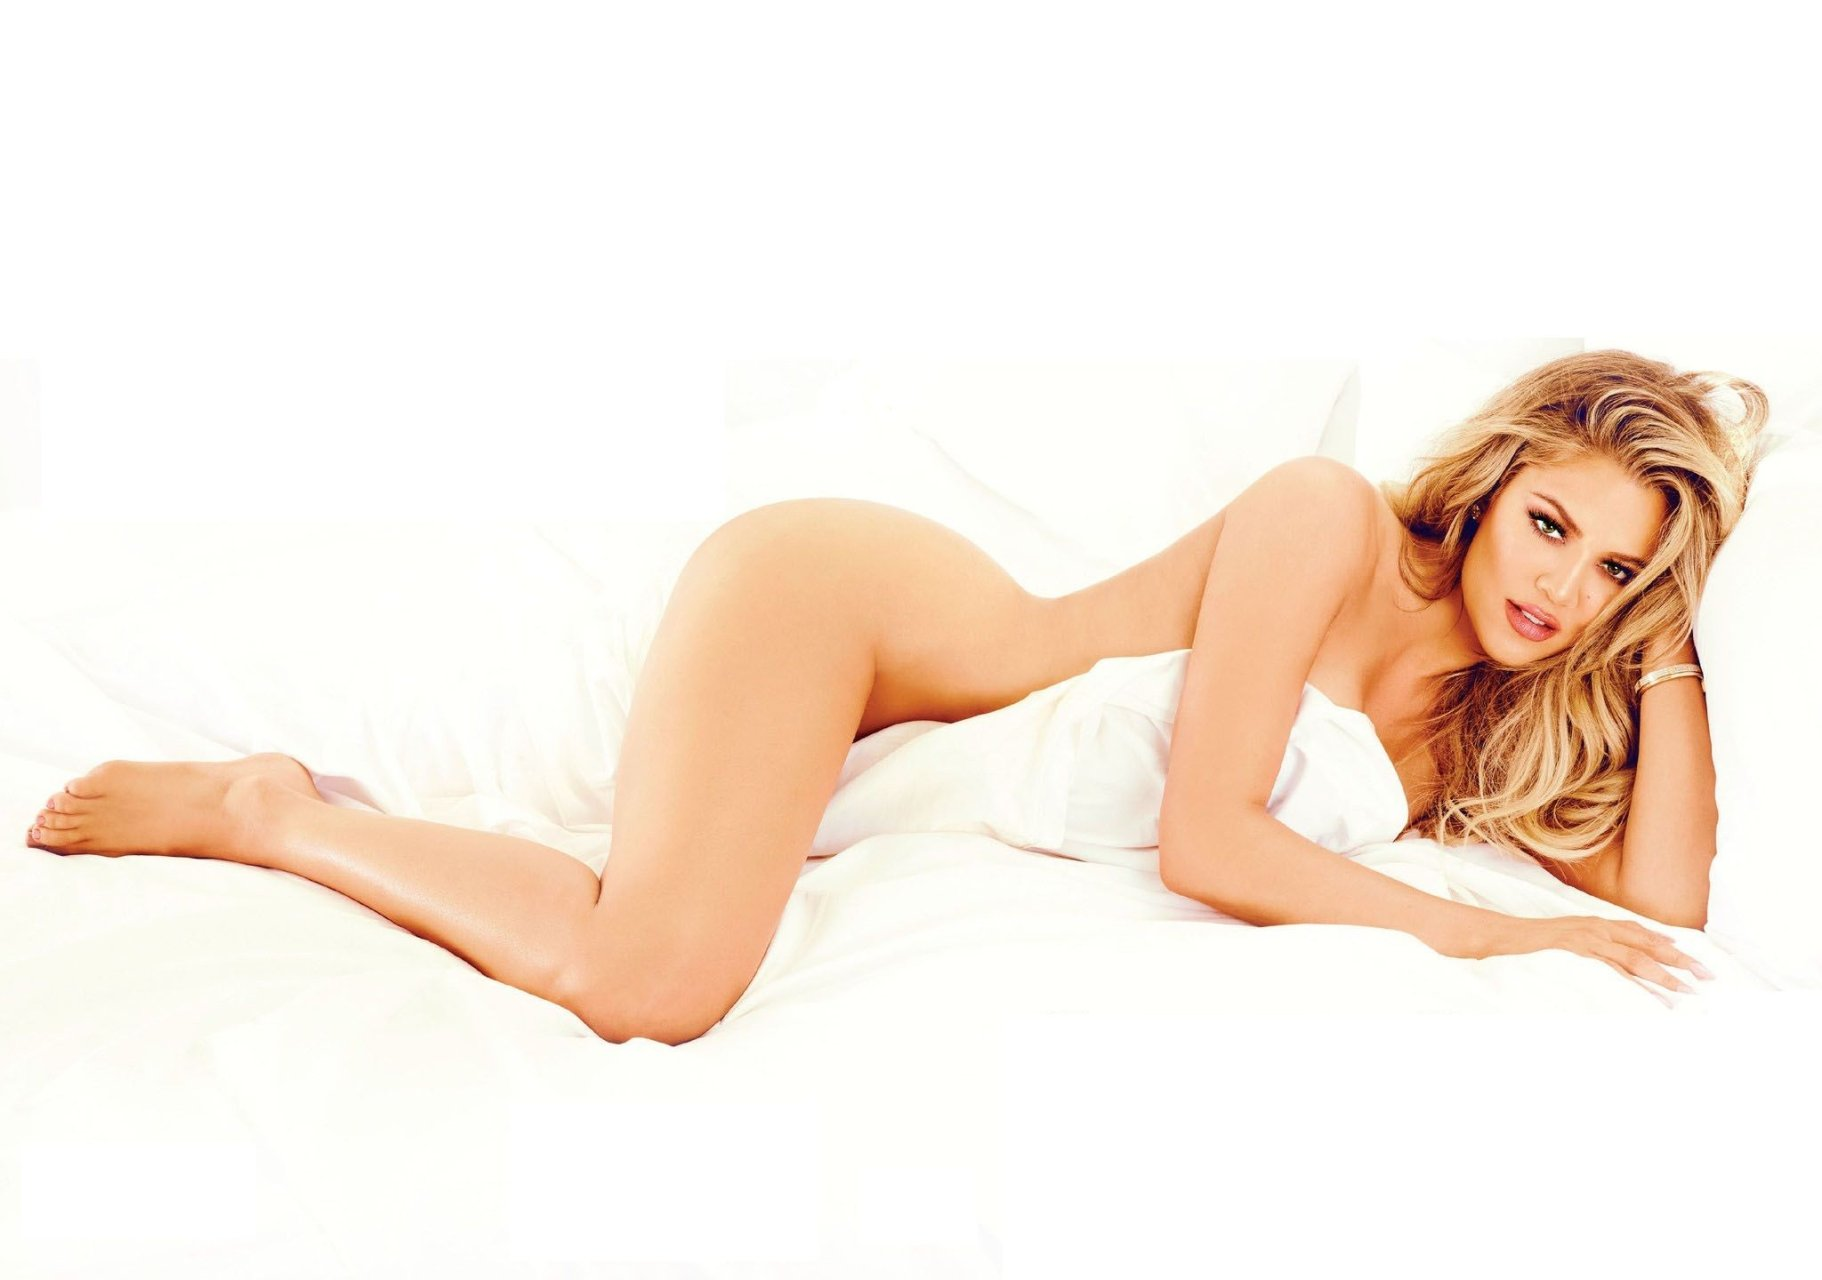 Nude Photos Of Khloe Kardashian 48